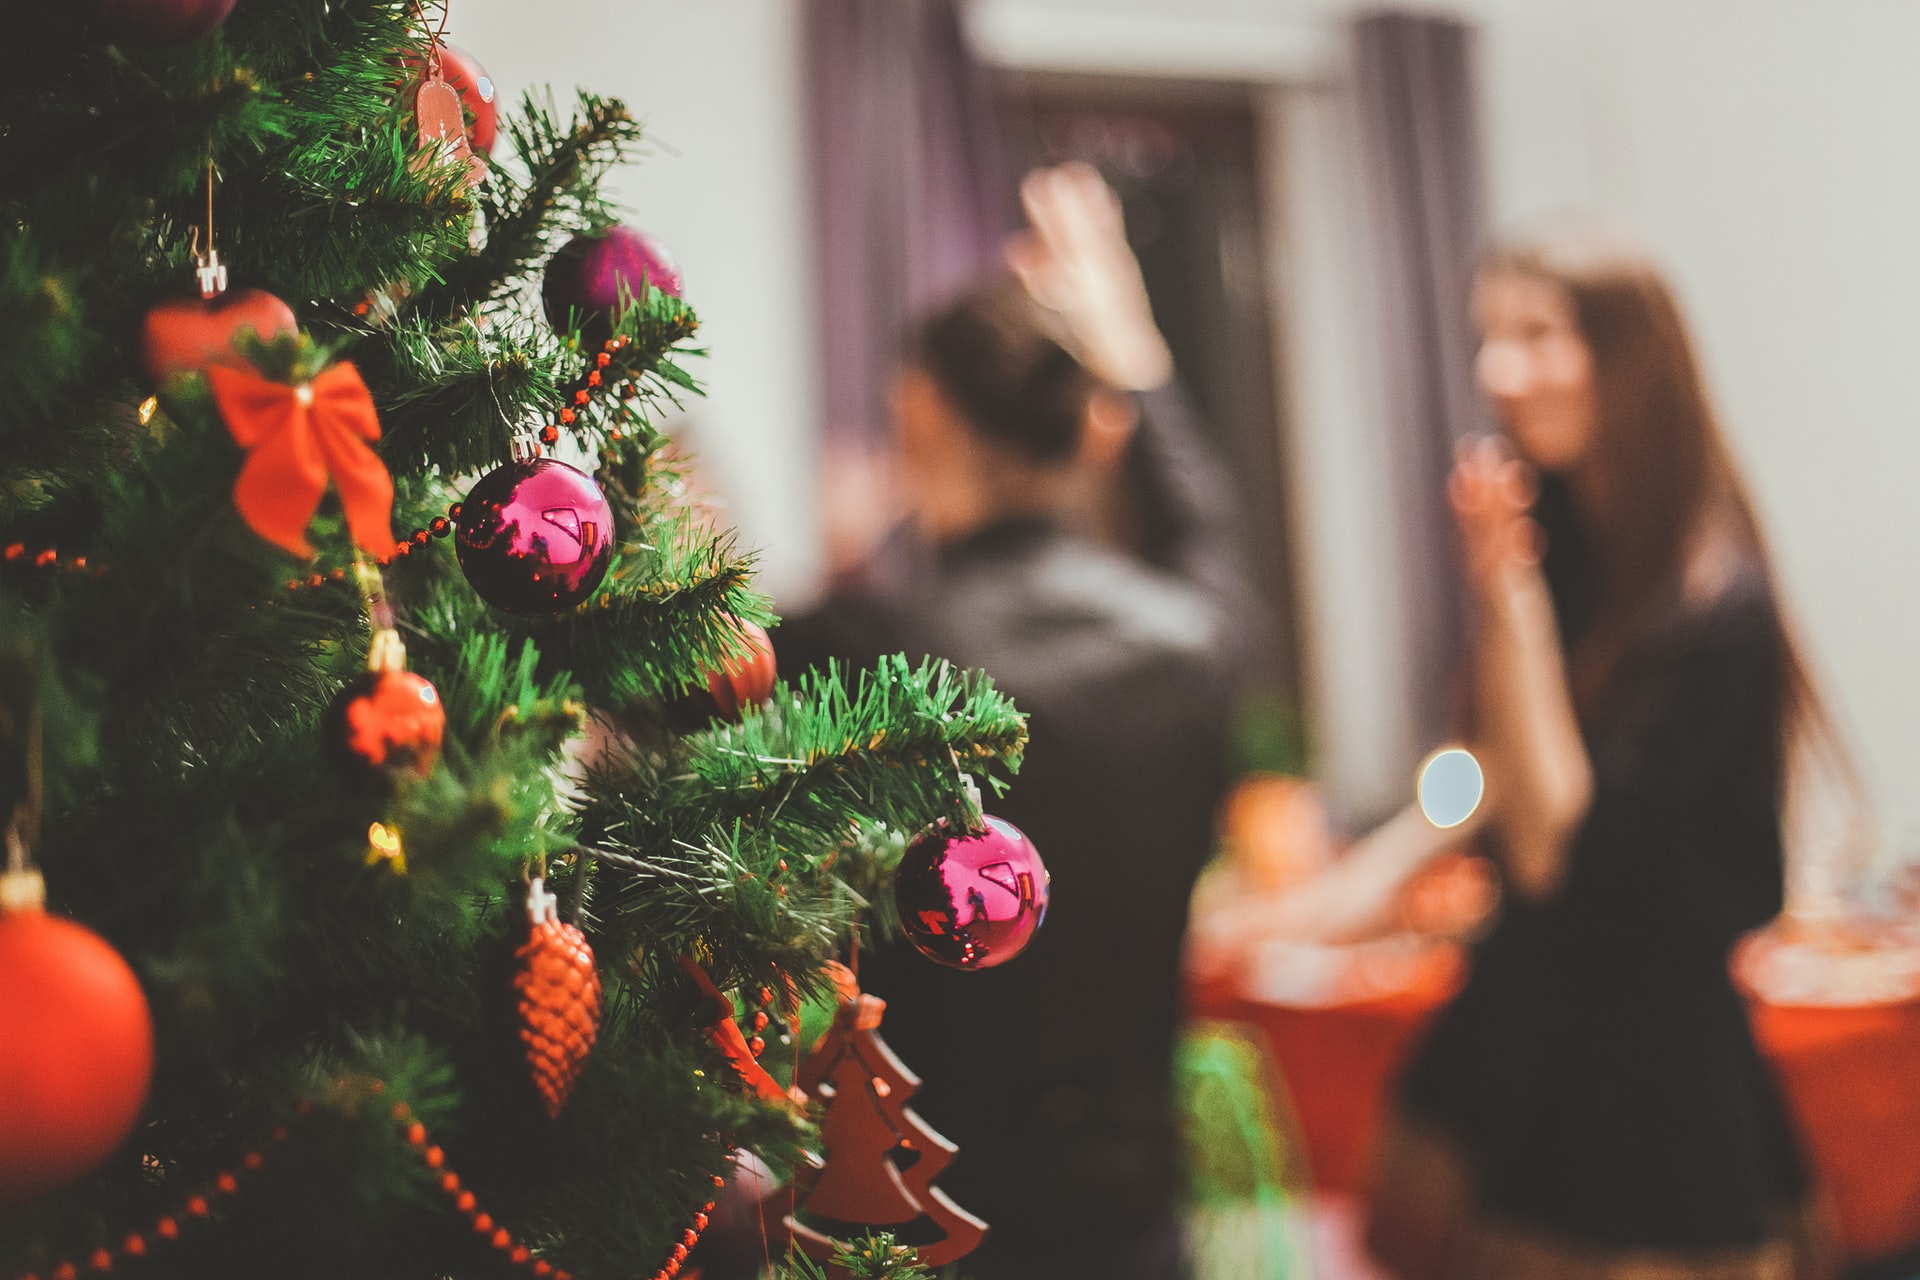 Christmas Parties While Socially Distanced